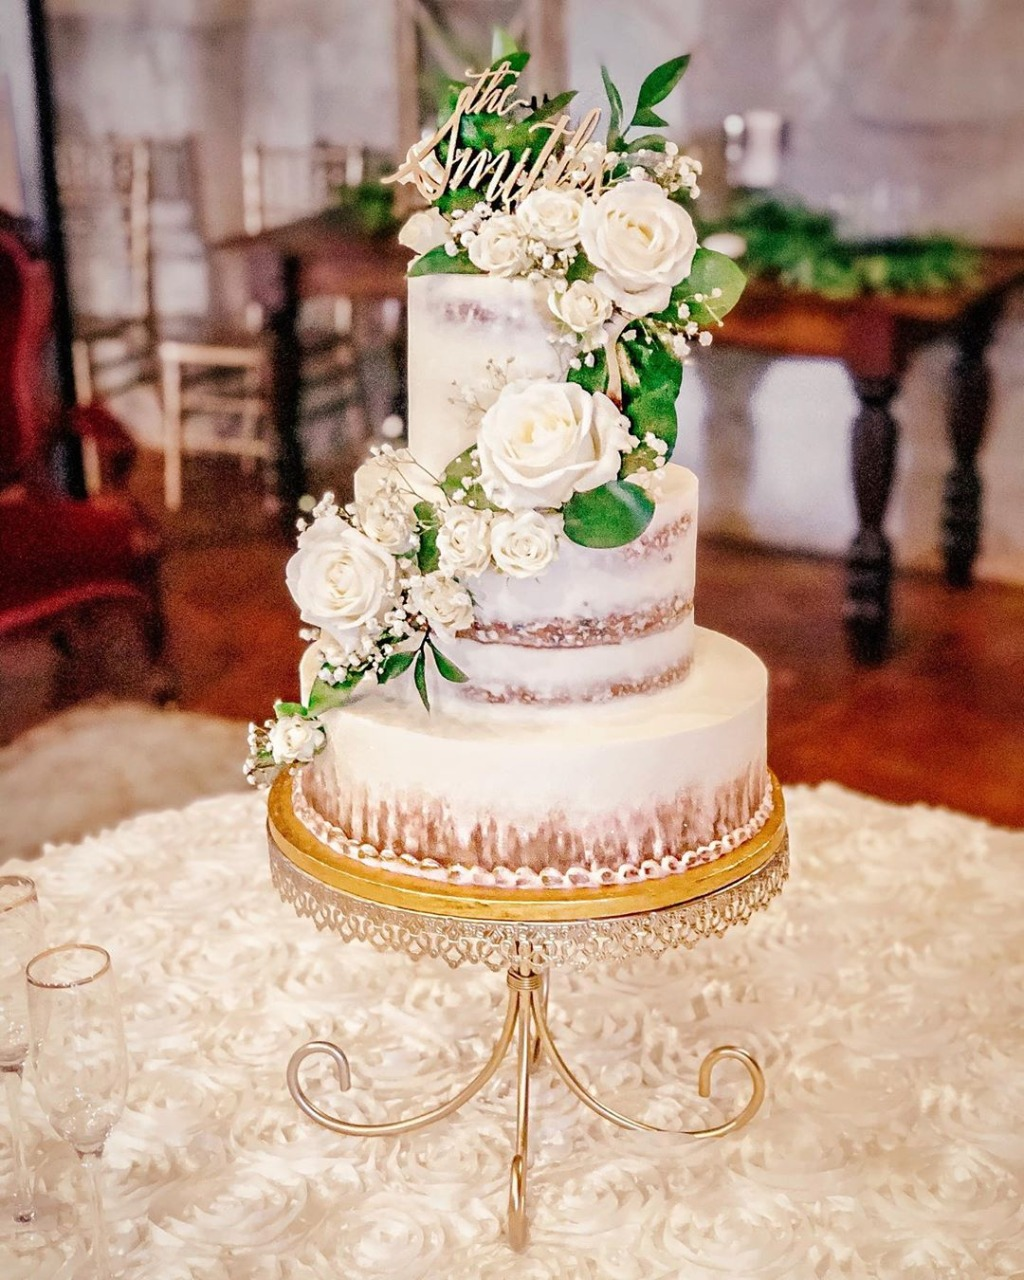 Pretty Little Details! Wedding cake by Charmed Cakes on a gold wedding cake stand created by Opulent Treasures.